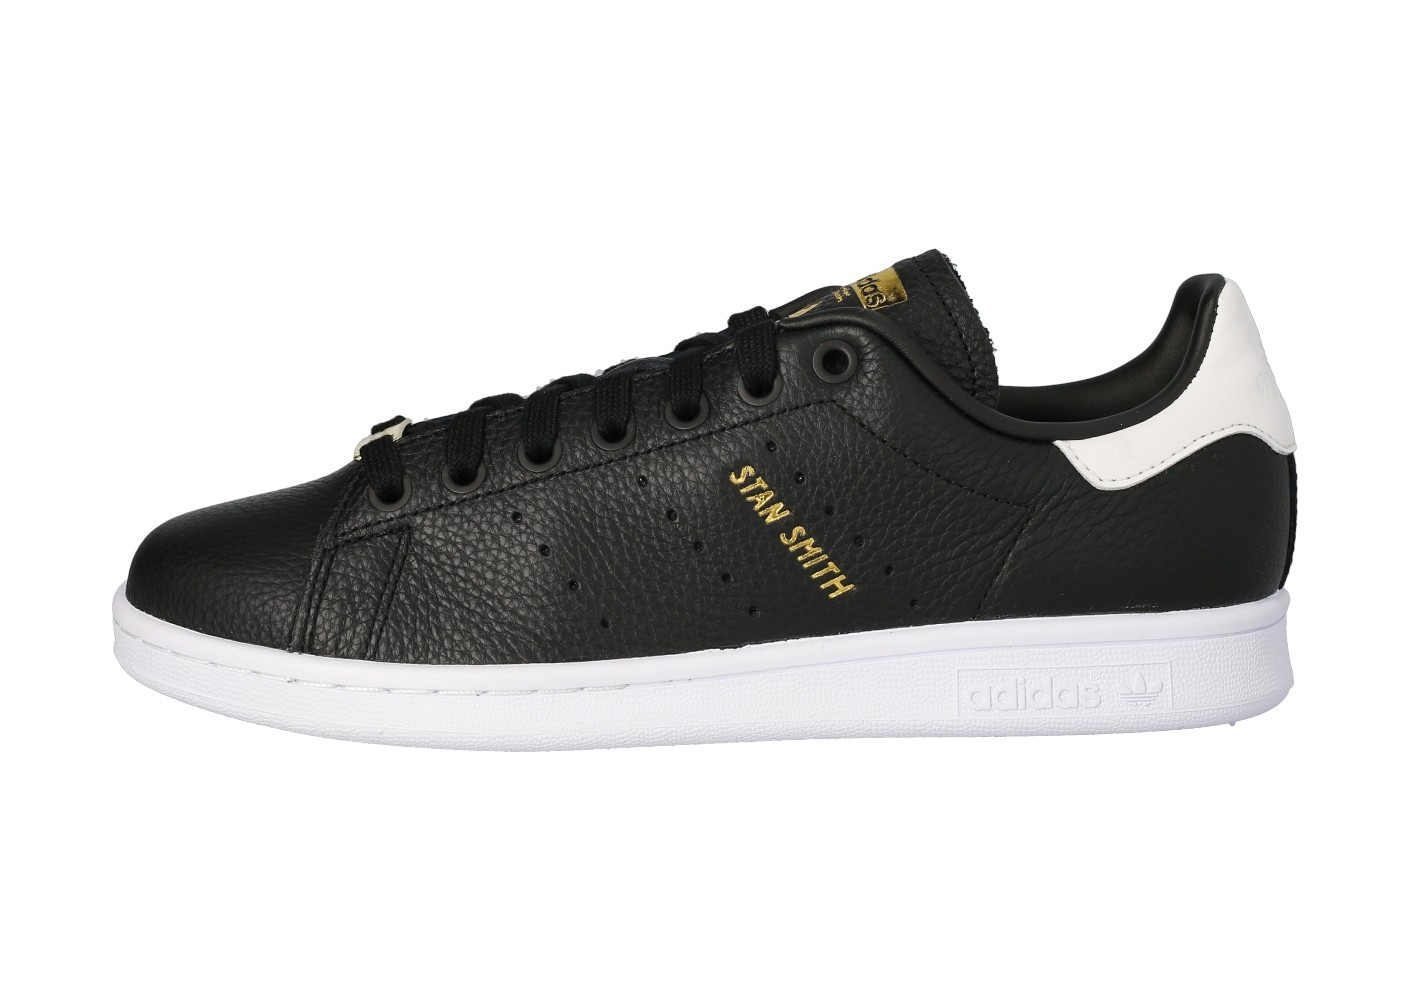 adidas Stan Smith noire blanche et or Chaussures Baskets